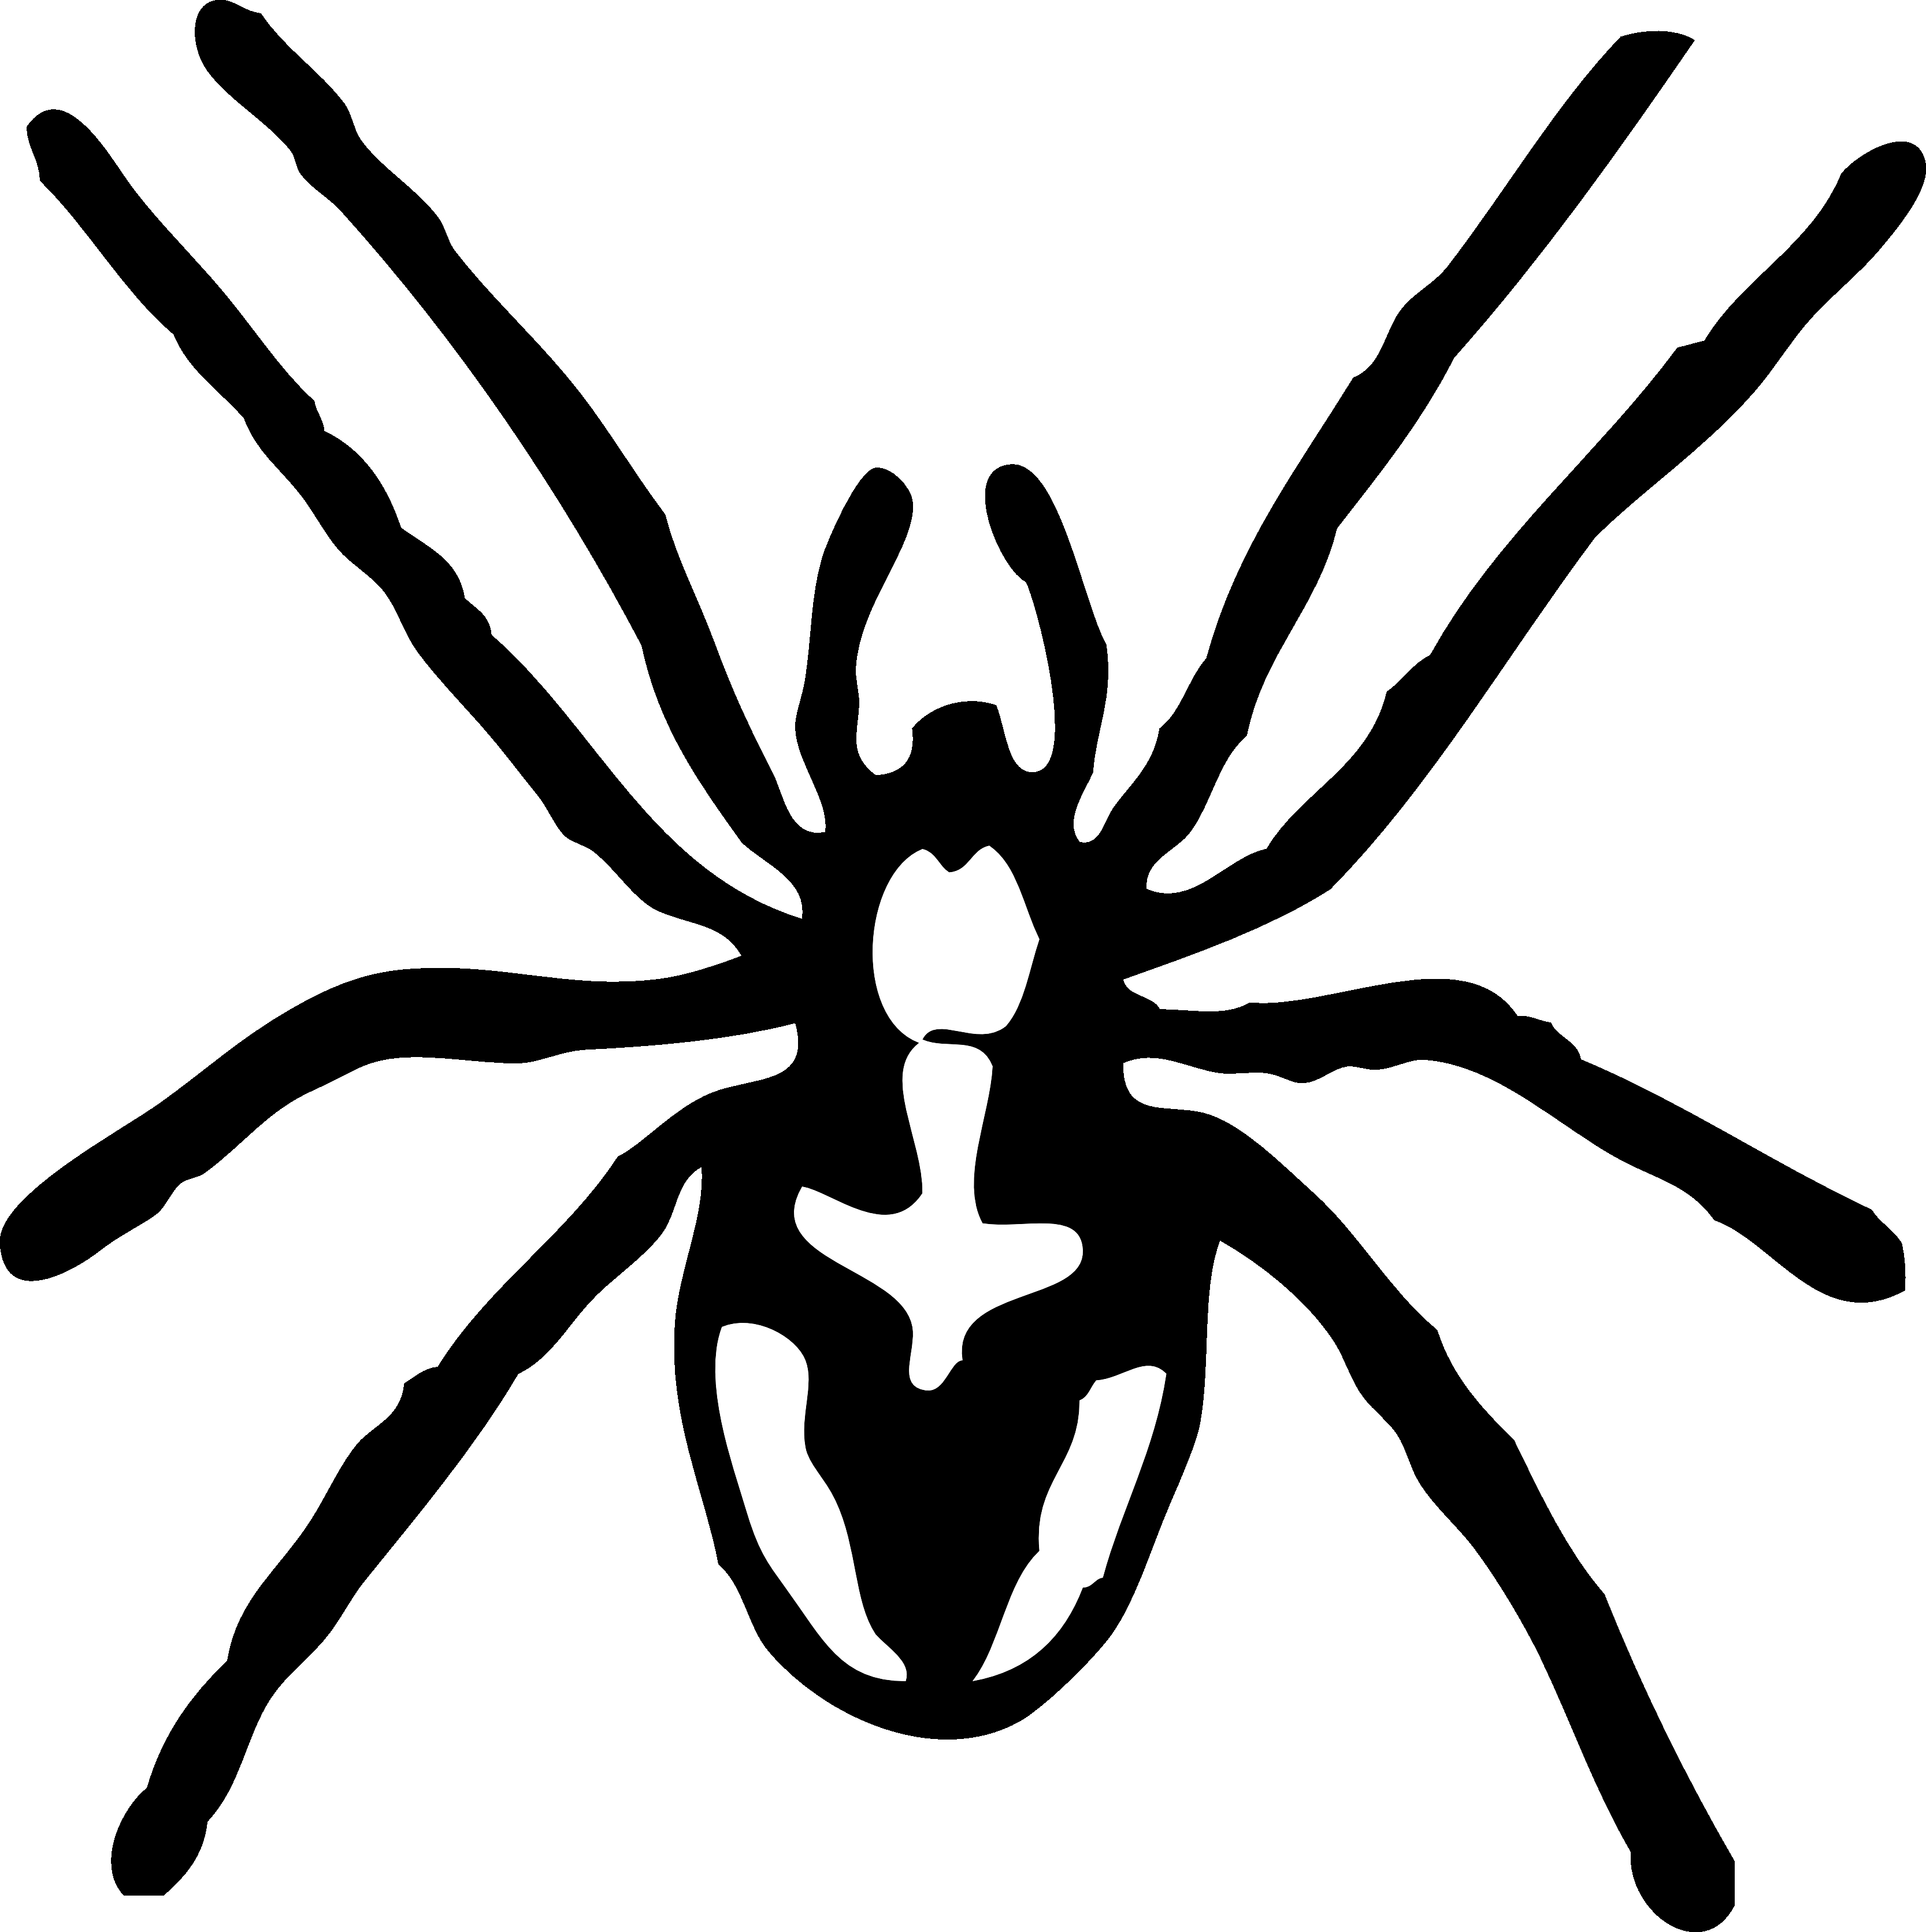 Tag: black and white striped spider with green eyes.